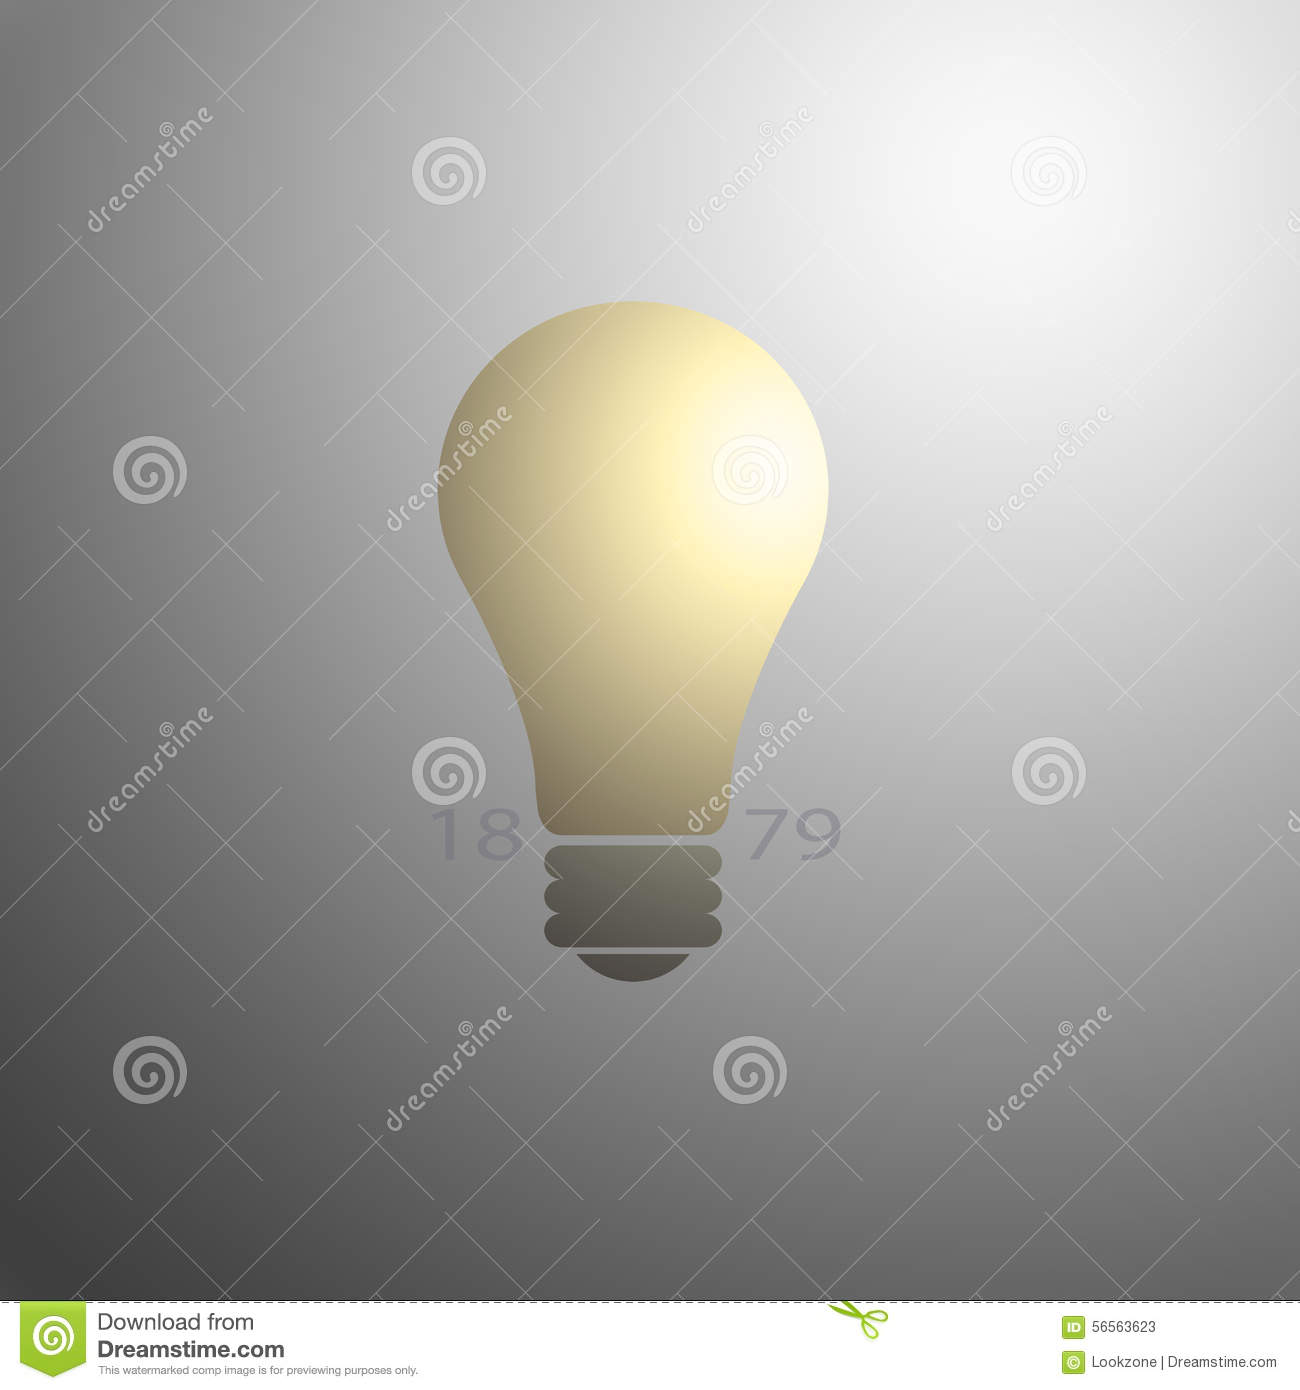 Light Bulb With Invention Date Stock Illustration - Image: 56563623:Light Bulb with Invention Date,Lighting